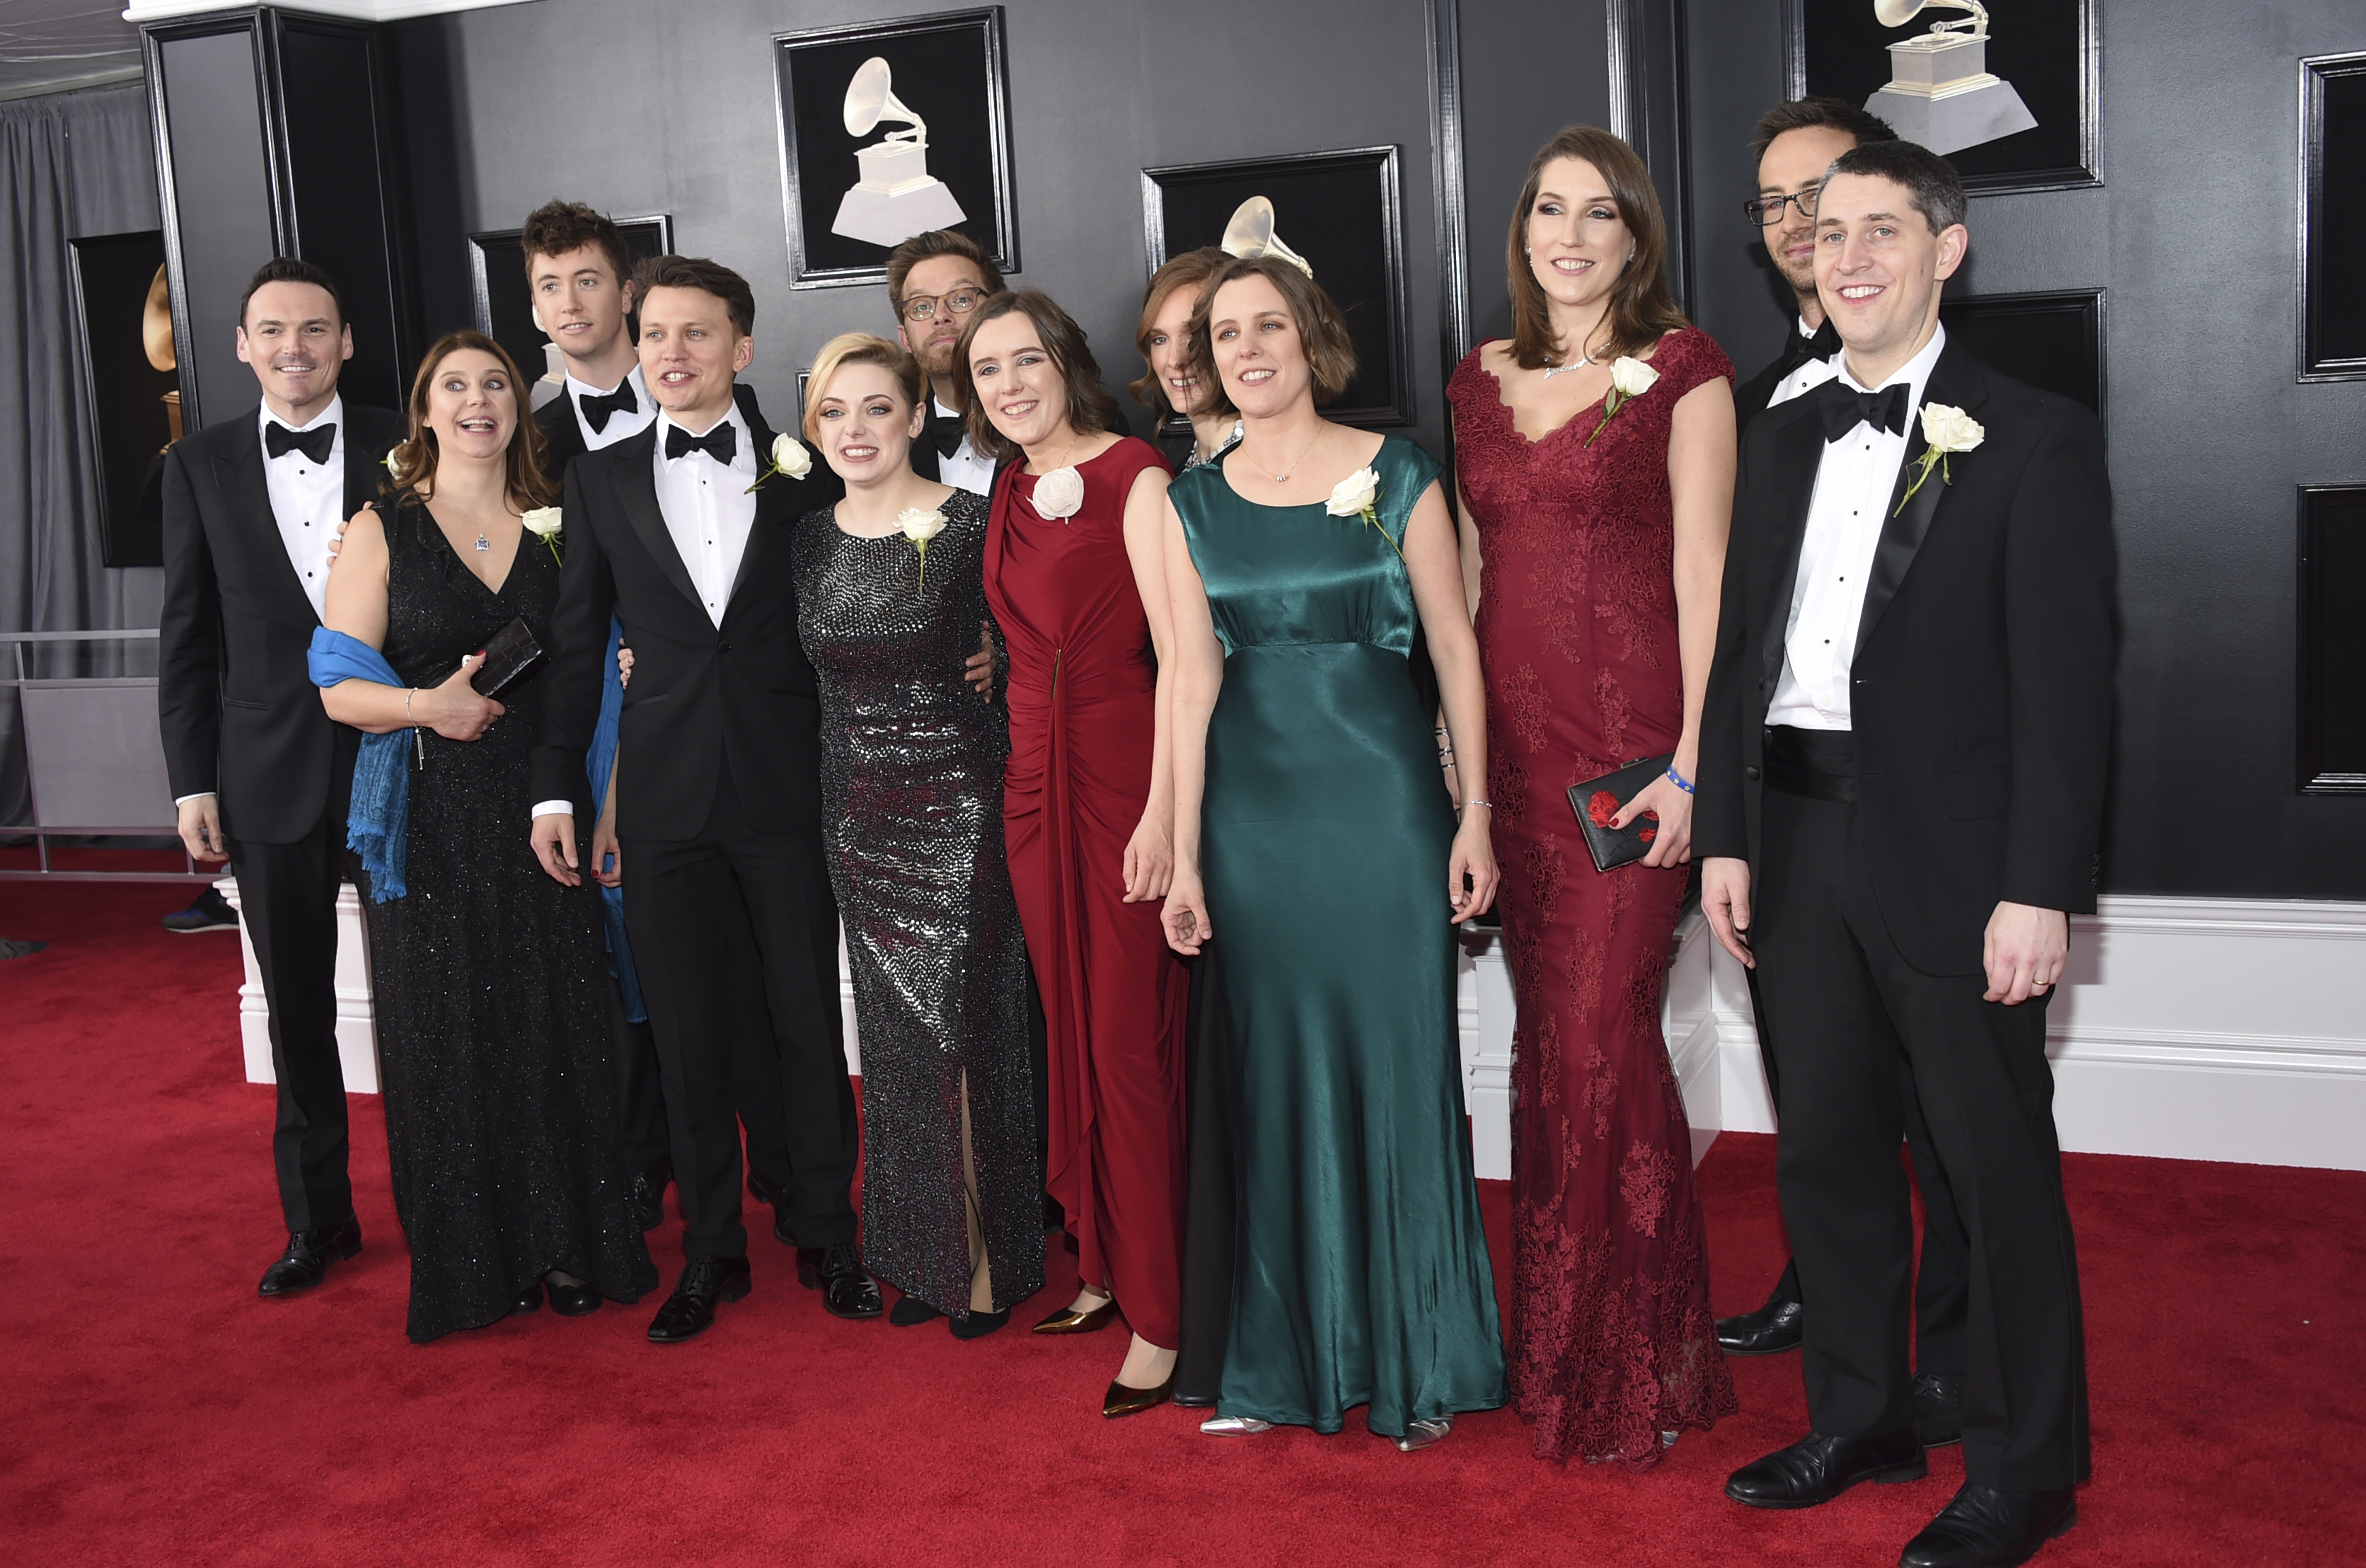 <div class='meta'><div class='origin-logo' data-origin='AP'></div><span class='caption-text' data-credit='Evan Agostini/Invision/AP'>Stile Antico arrives at the 60th annual Grammy Awards at Madison Square Garden on Sunday, Jan. 28, 2018, in New York.</span></div>